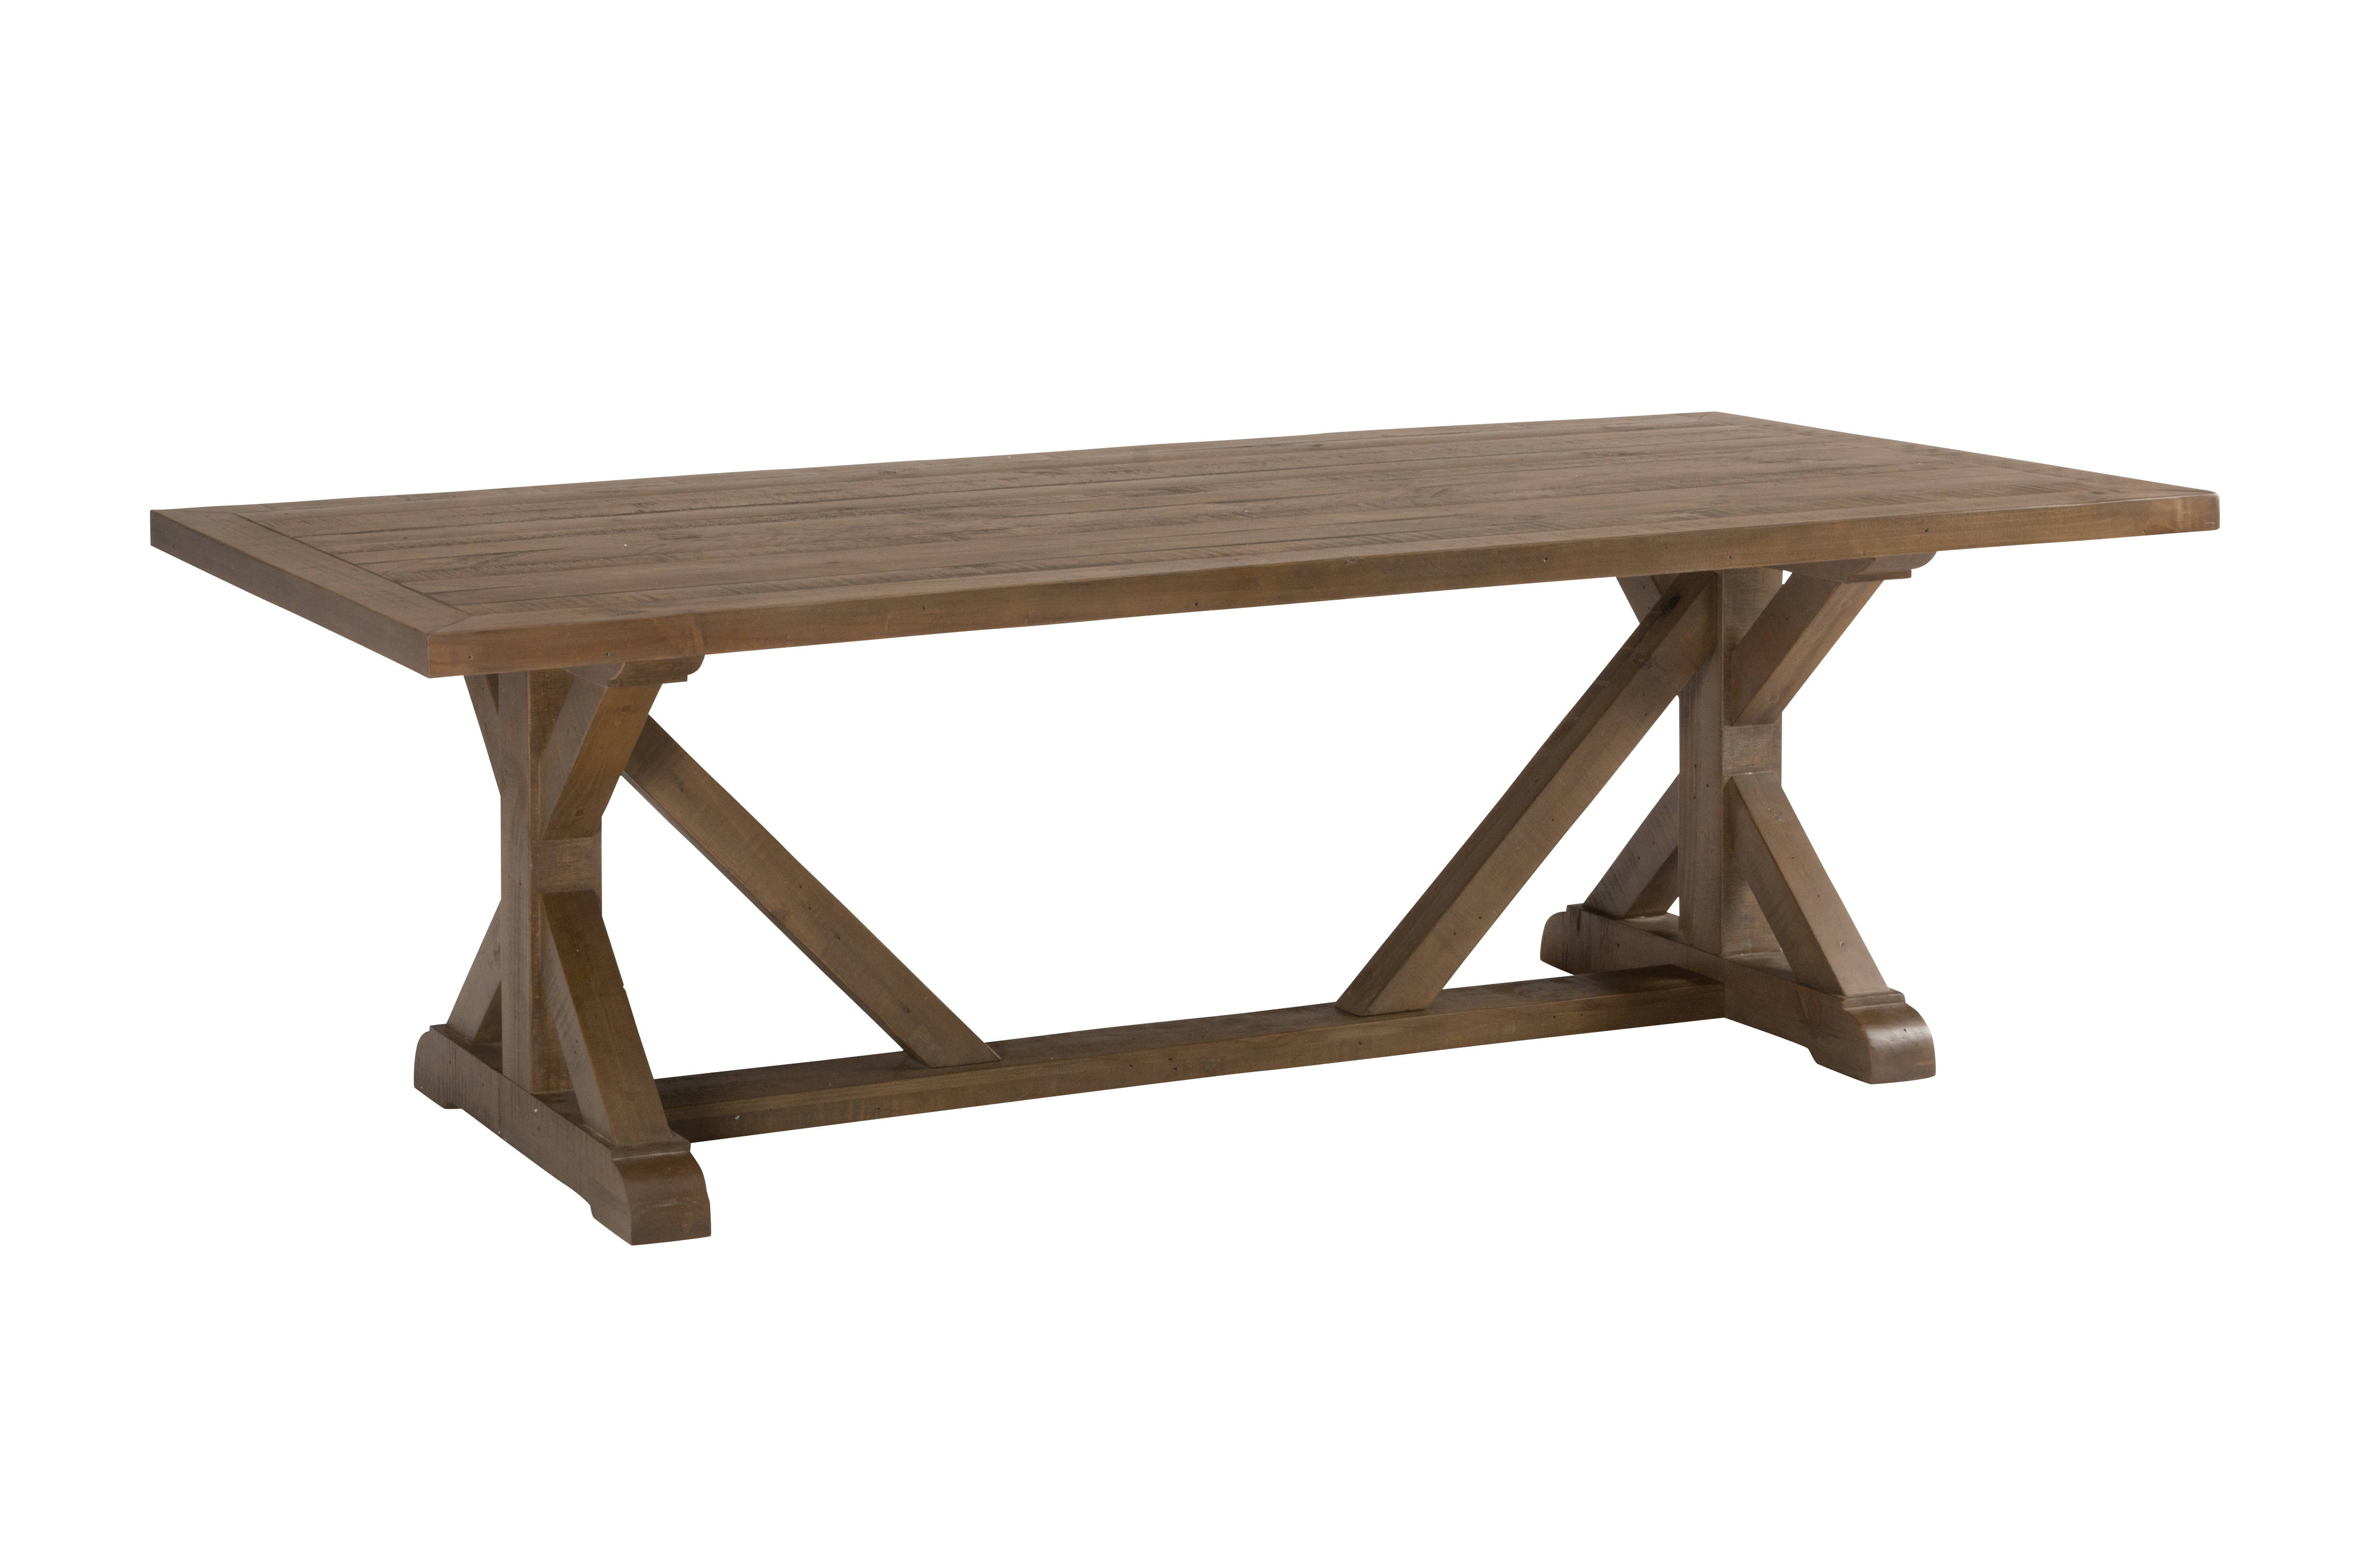 Super Jofran Furniture Slater Mill Trestle Dining Table The Squirreltailoven Fun Painted Chair Ideas Images Squirreltailovenorg